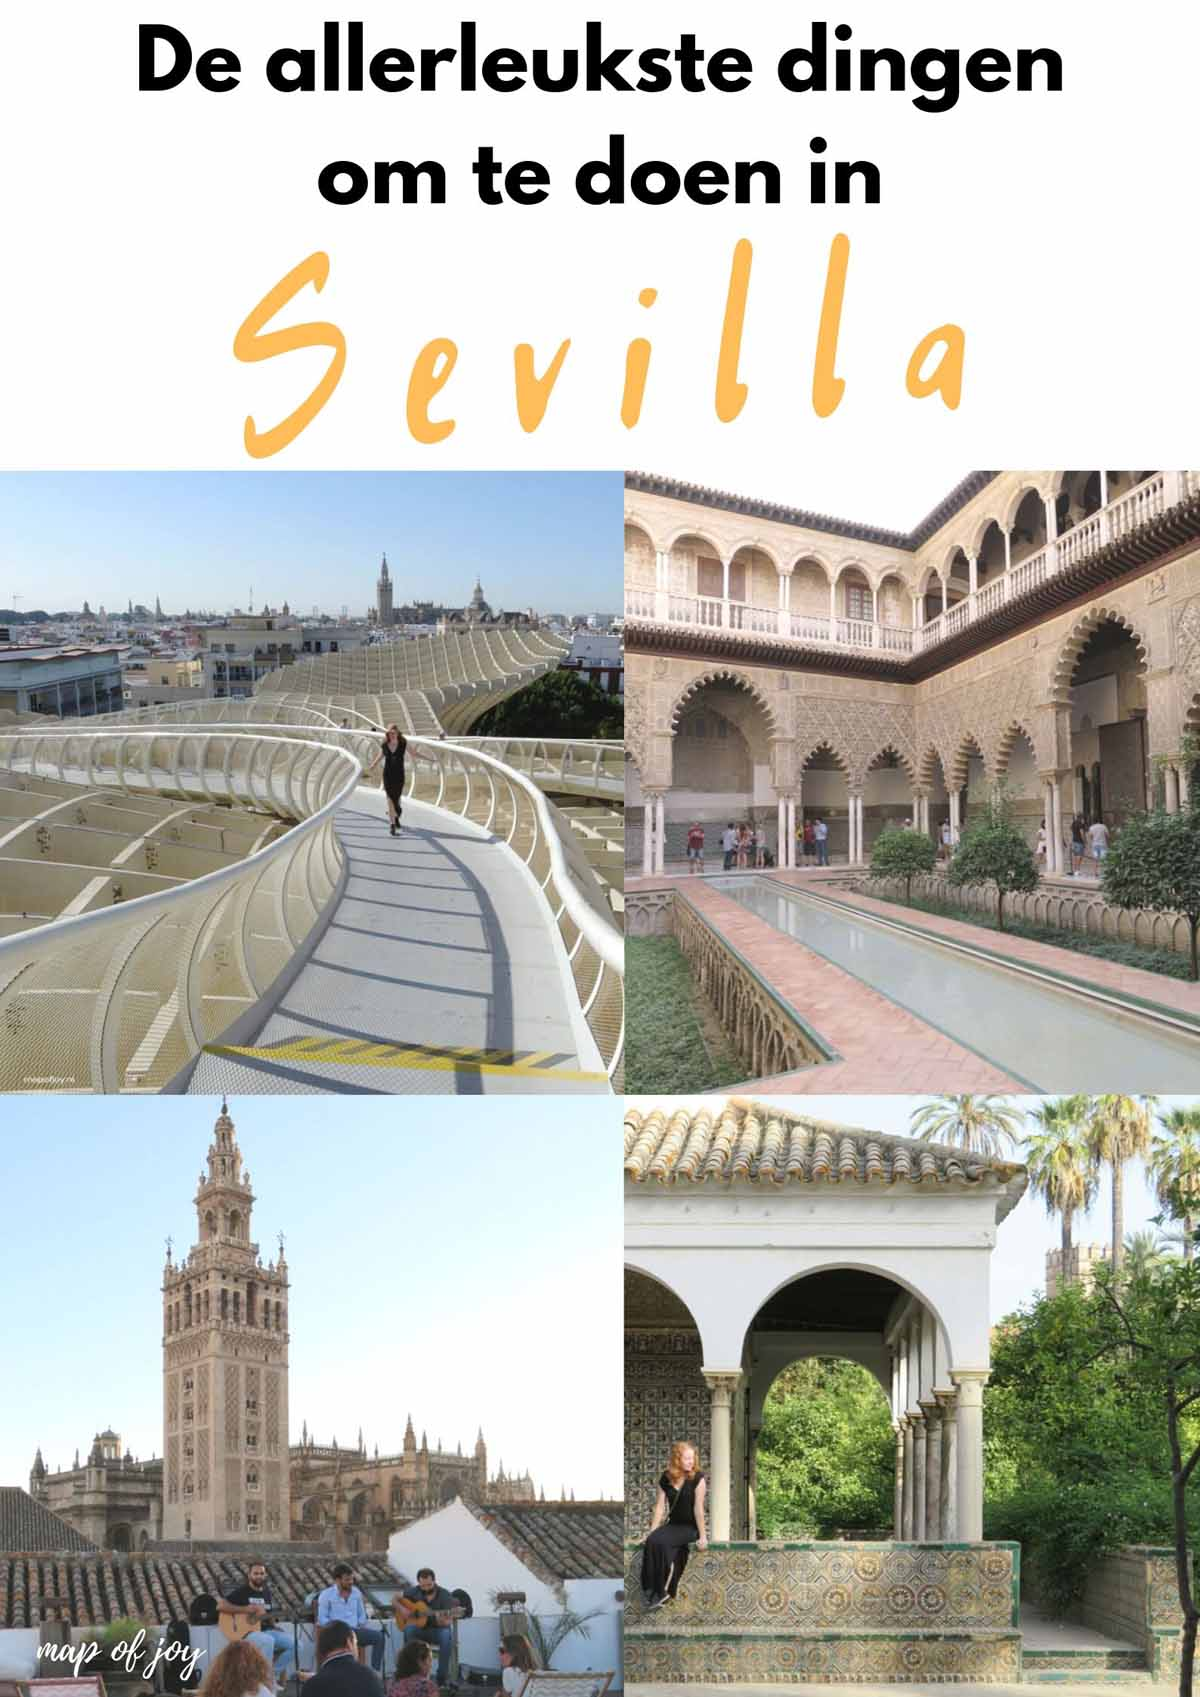 De allerleukste dingen om te doen in Sevilla - Map of Joy